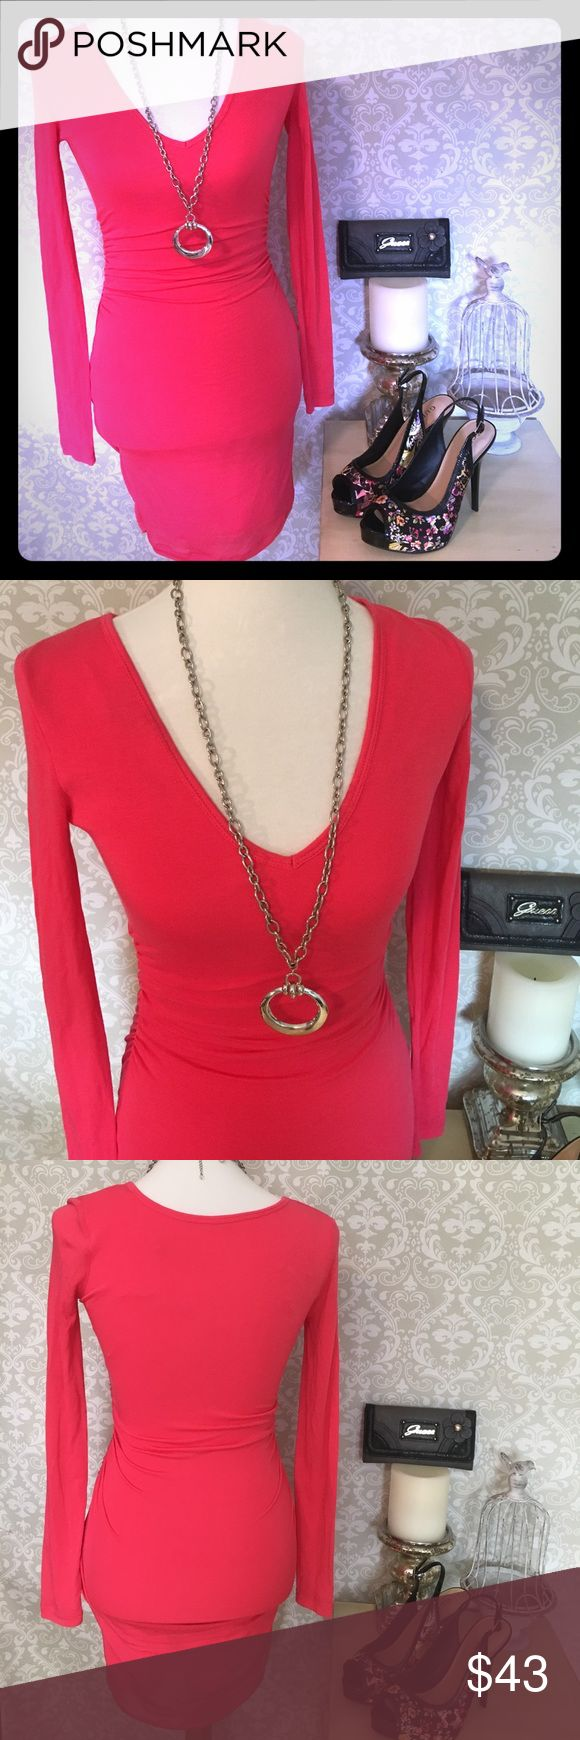 Guess Dress Dress is beautiful red. It's has gathering on the sides as shown. Has a liner. Fabric is soft and just the right amount of cling. 95% Modal 5% spandex. Size Small. Excellent condition. Guess Dresses Mini